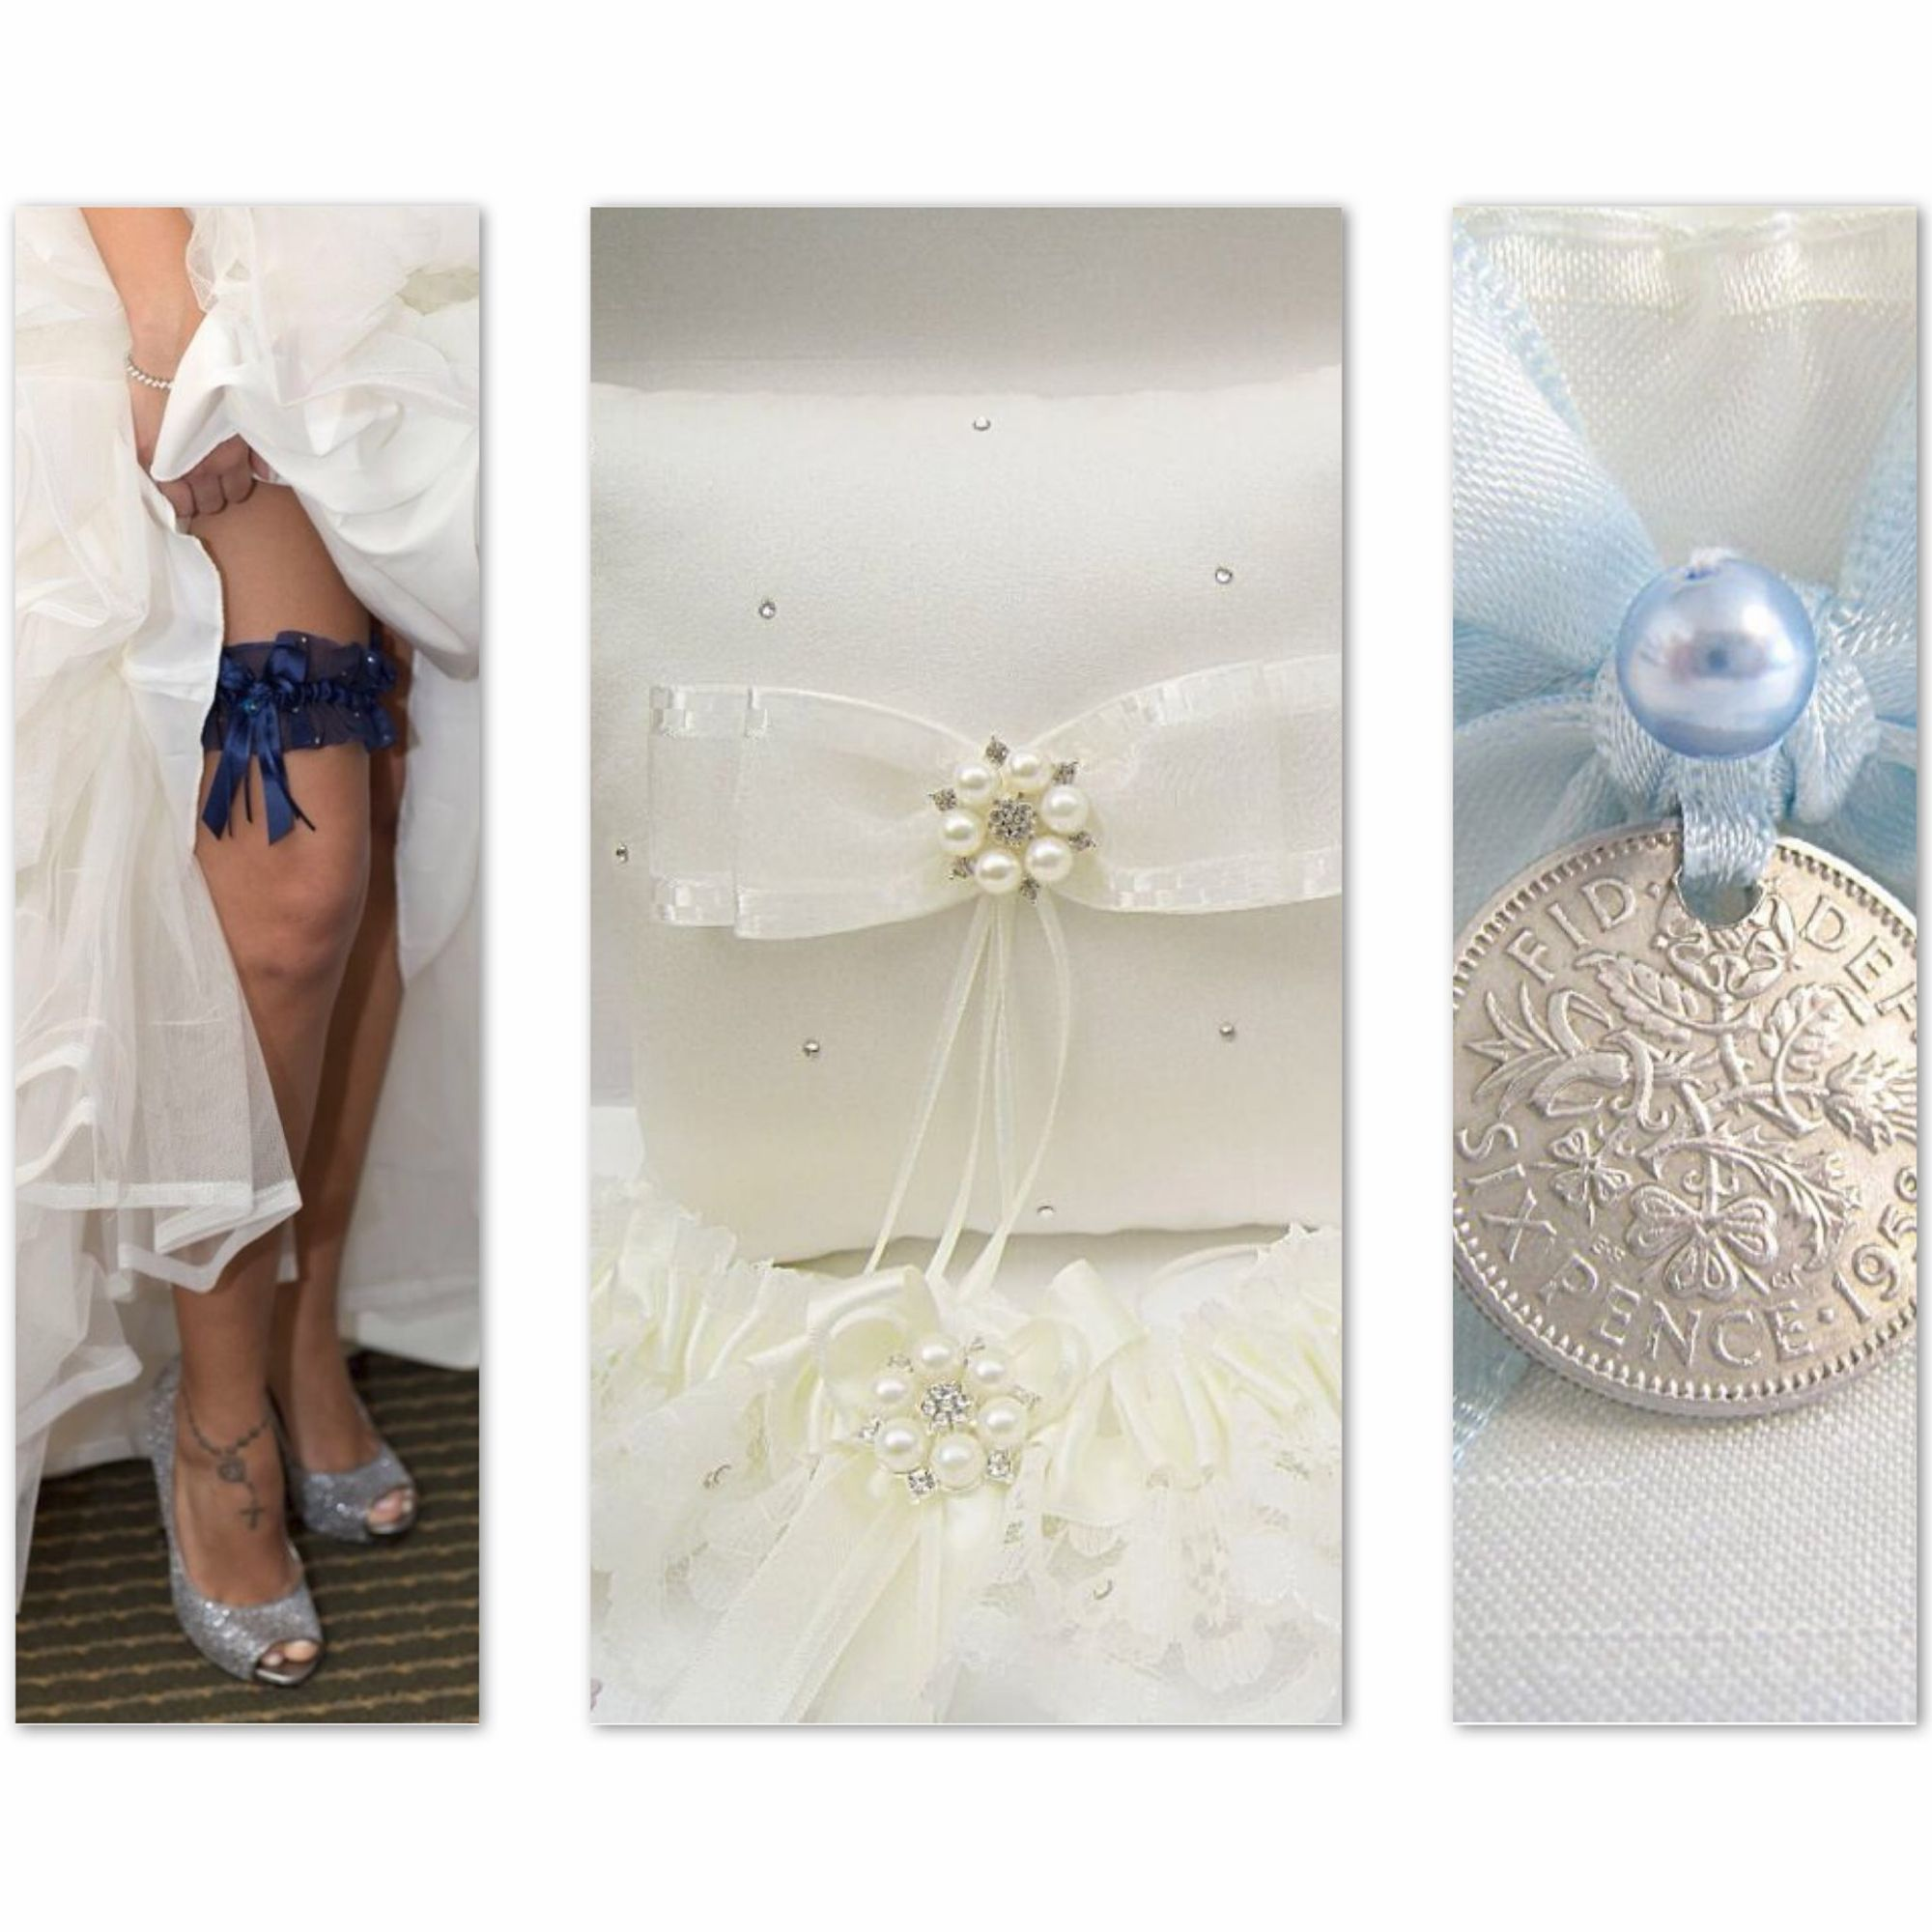 Luxury garters which are custom made to order.